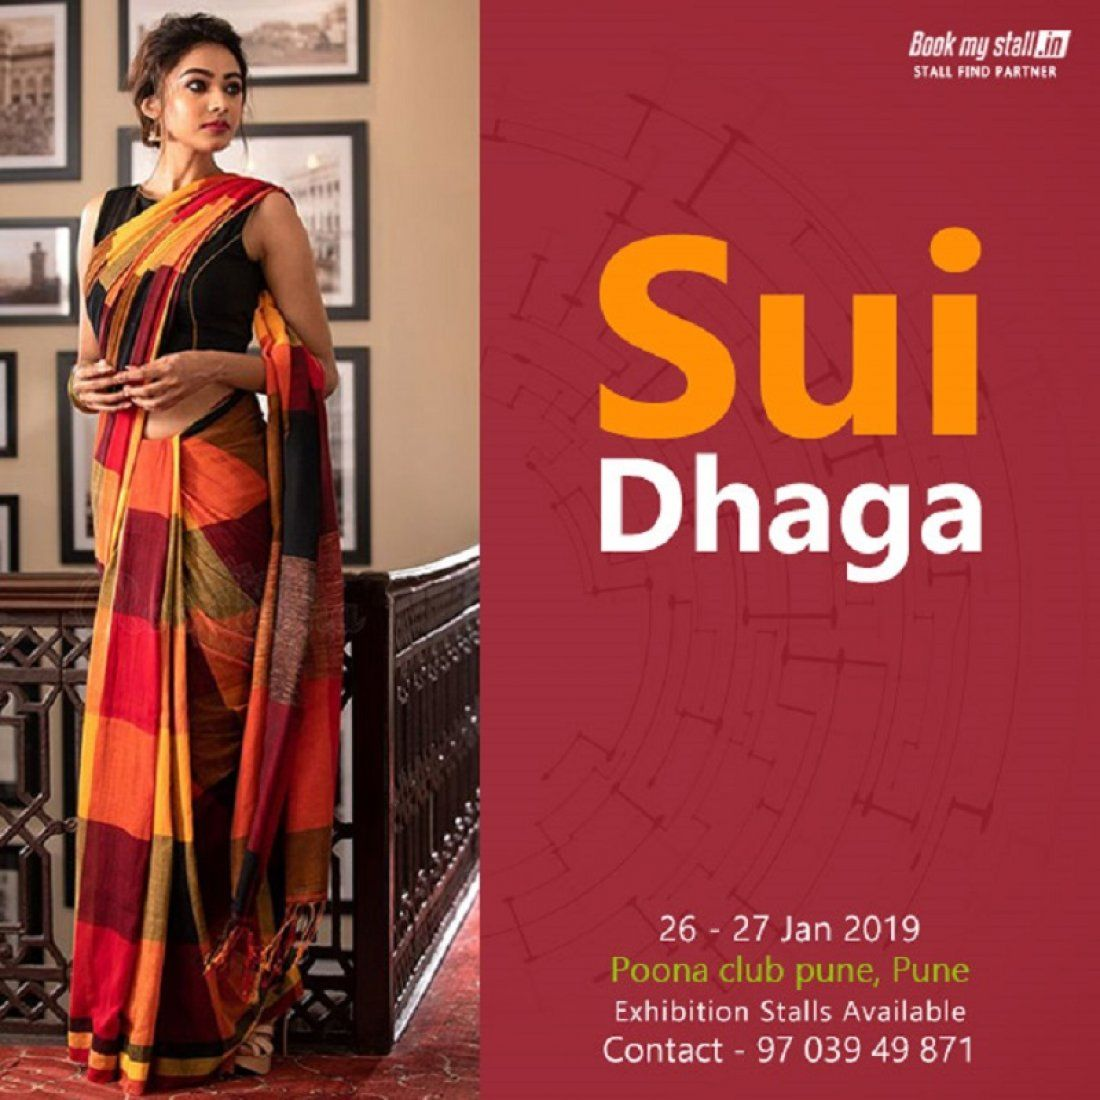 Sui Dhaga Lifestyle Exhibition at Pune - BookMyStall